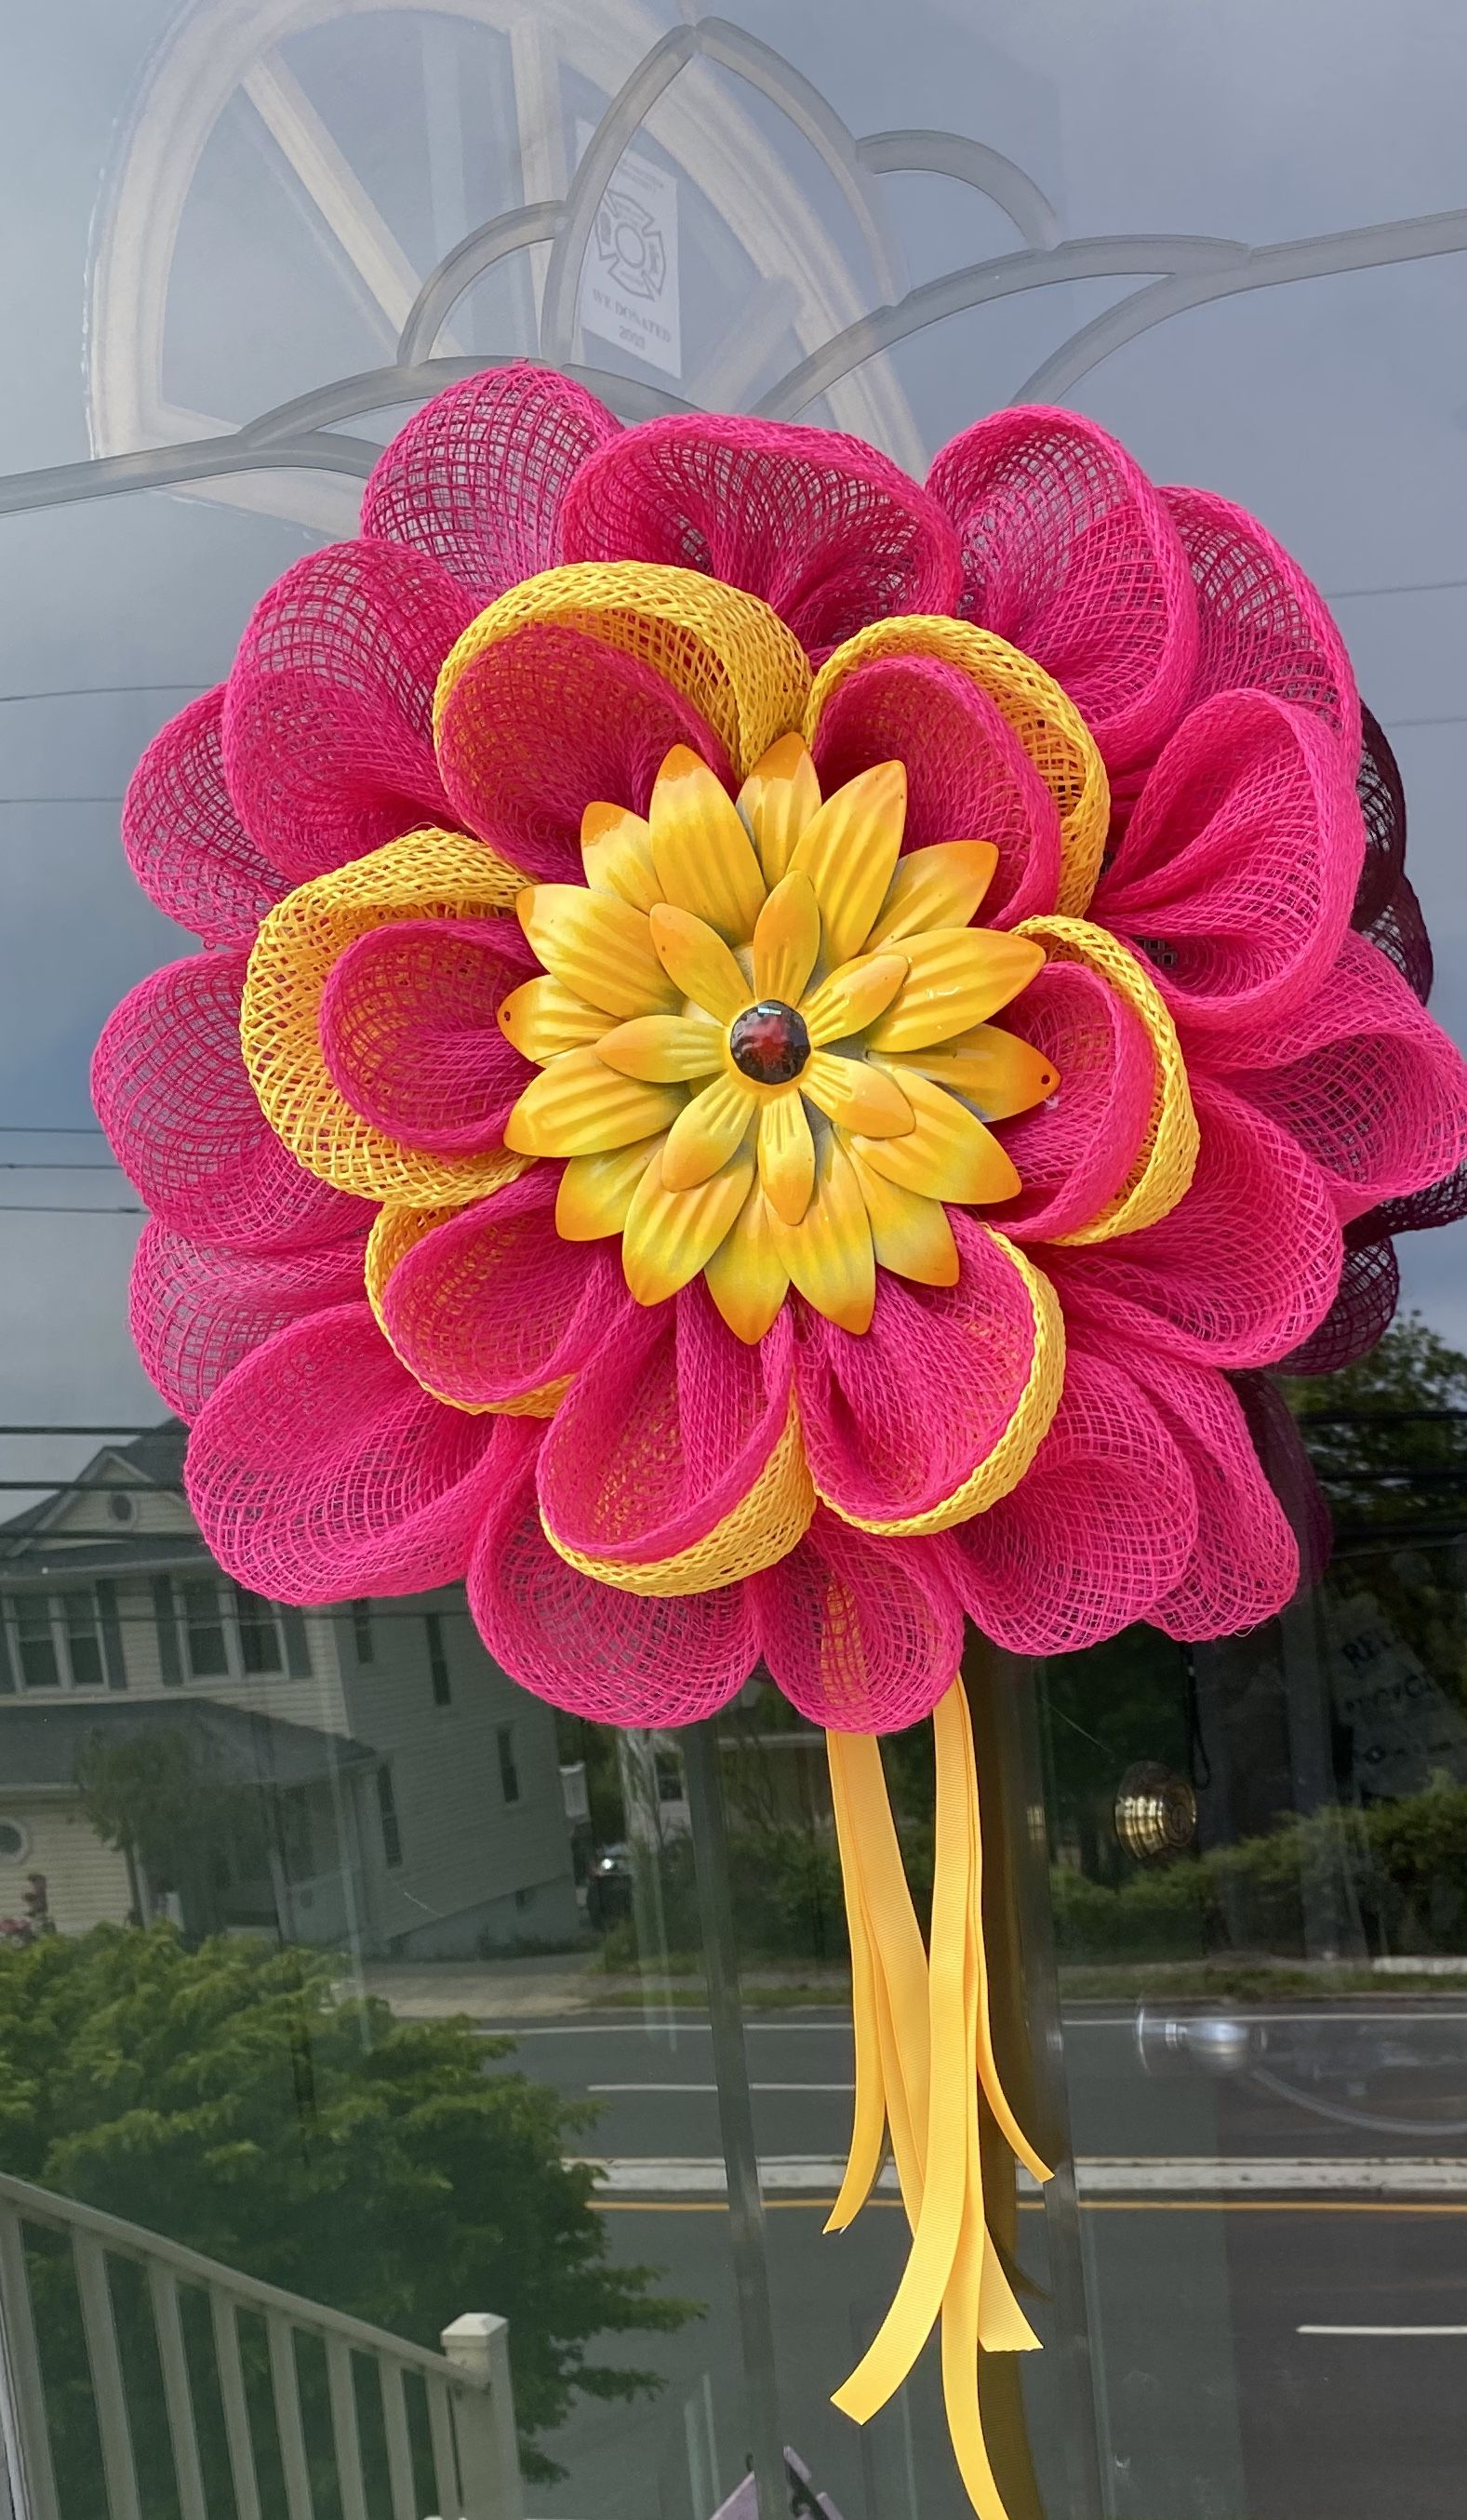 #ThinkPink  Adoorbs pink and yellow flower will brighten up even the gloomiest of days! 🌸😃